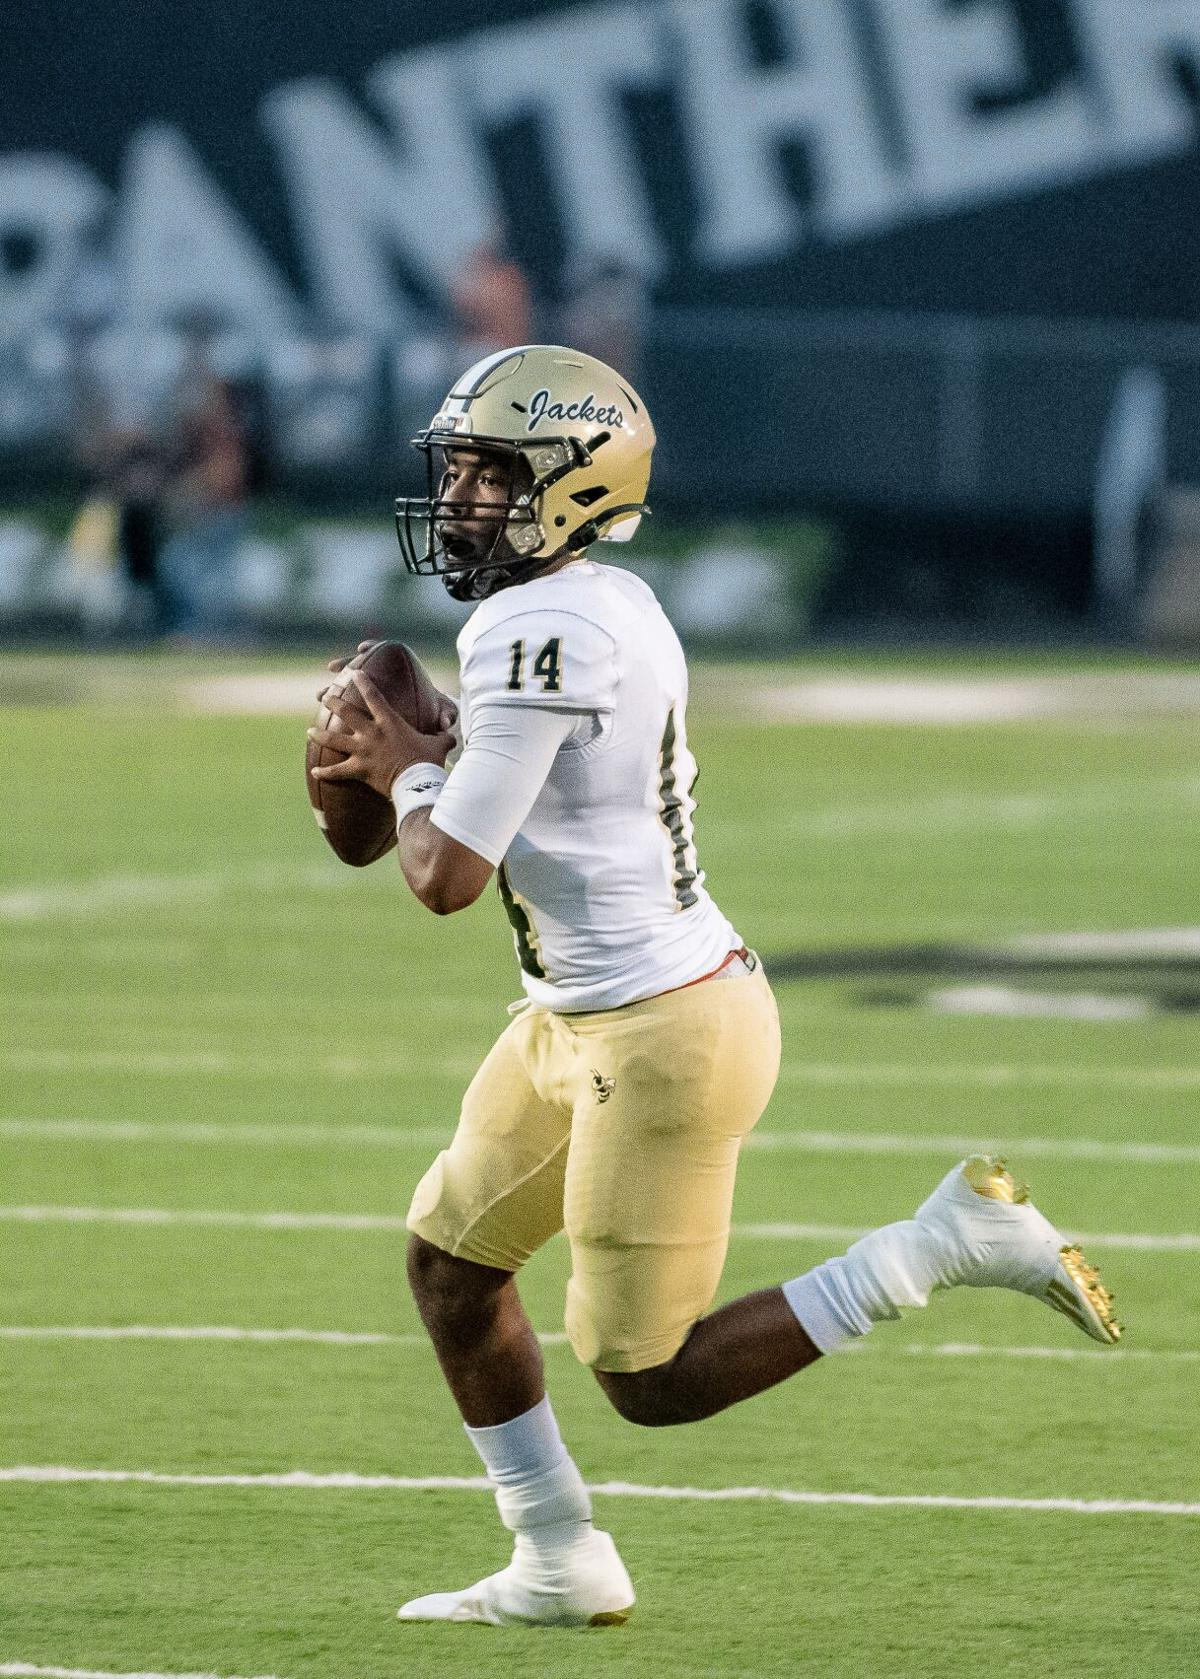 Jackets roll over Ridgeland on the road